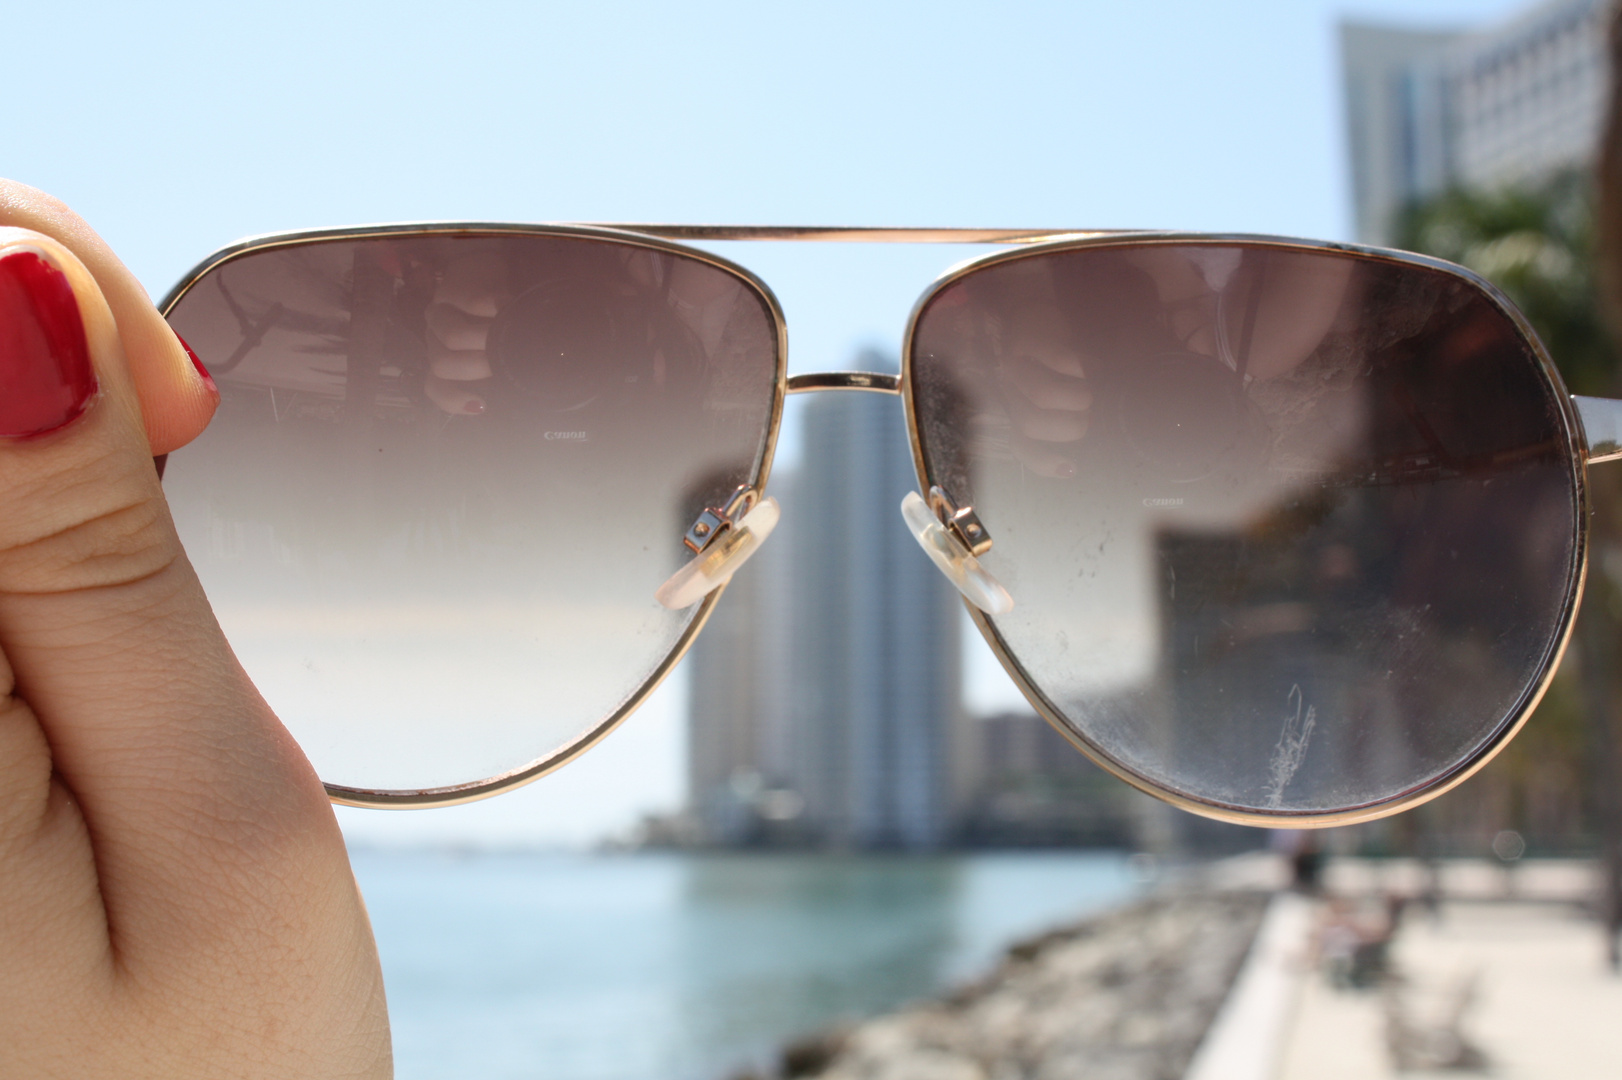 Observing Miami through sunglasses.